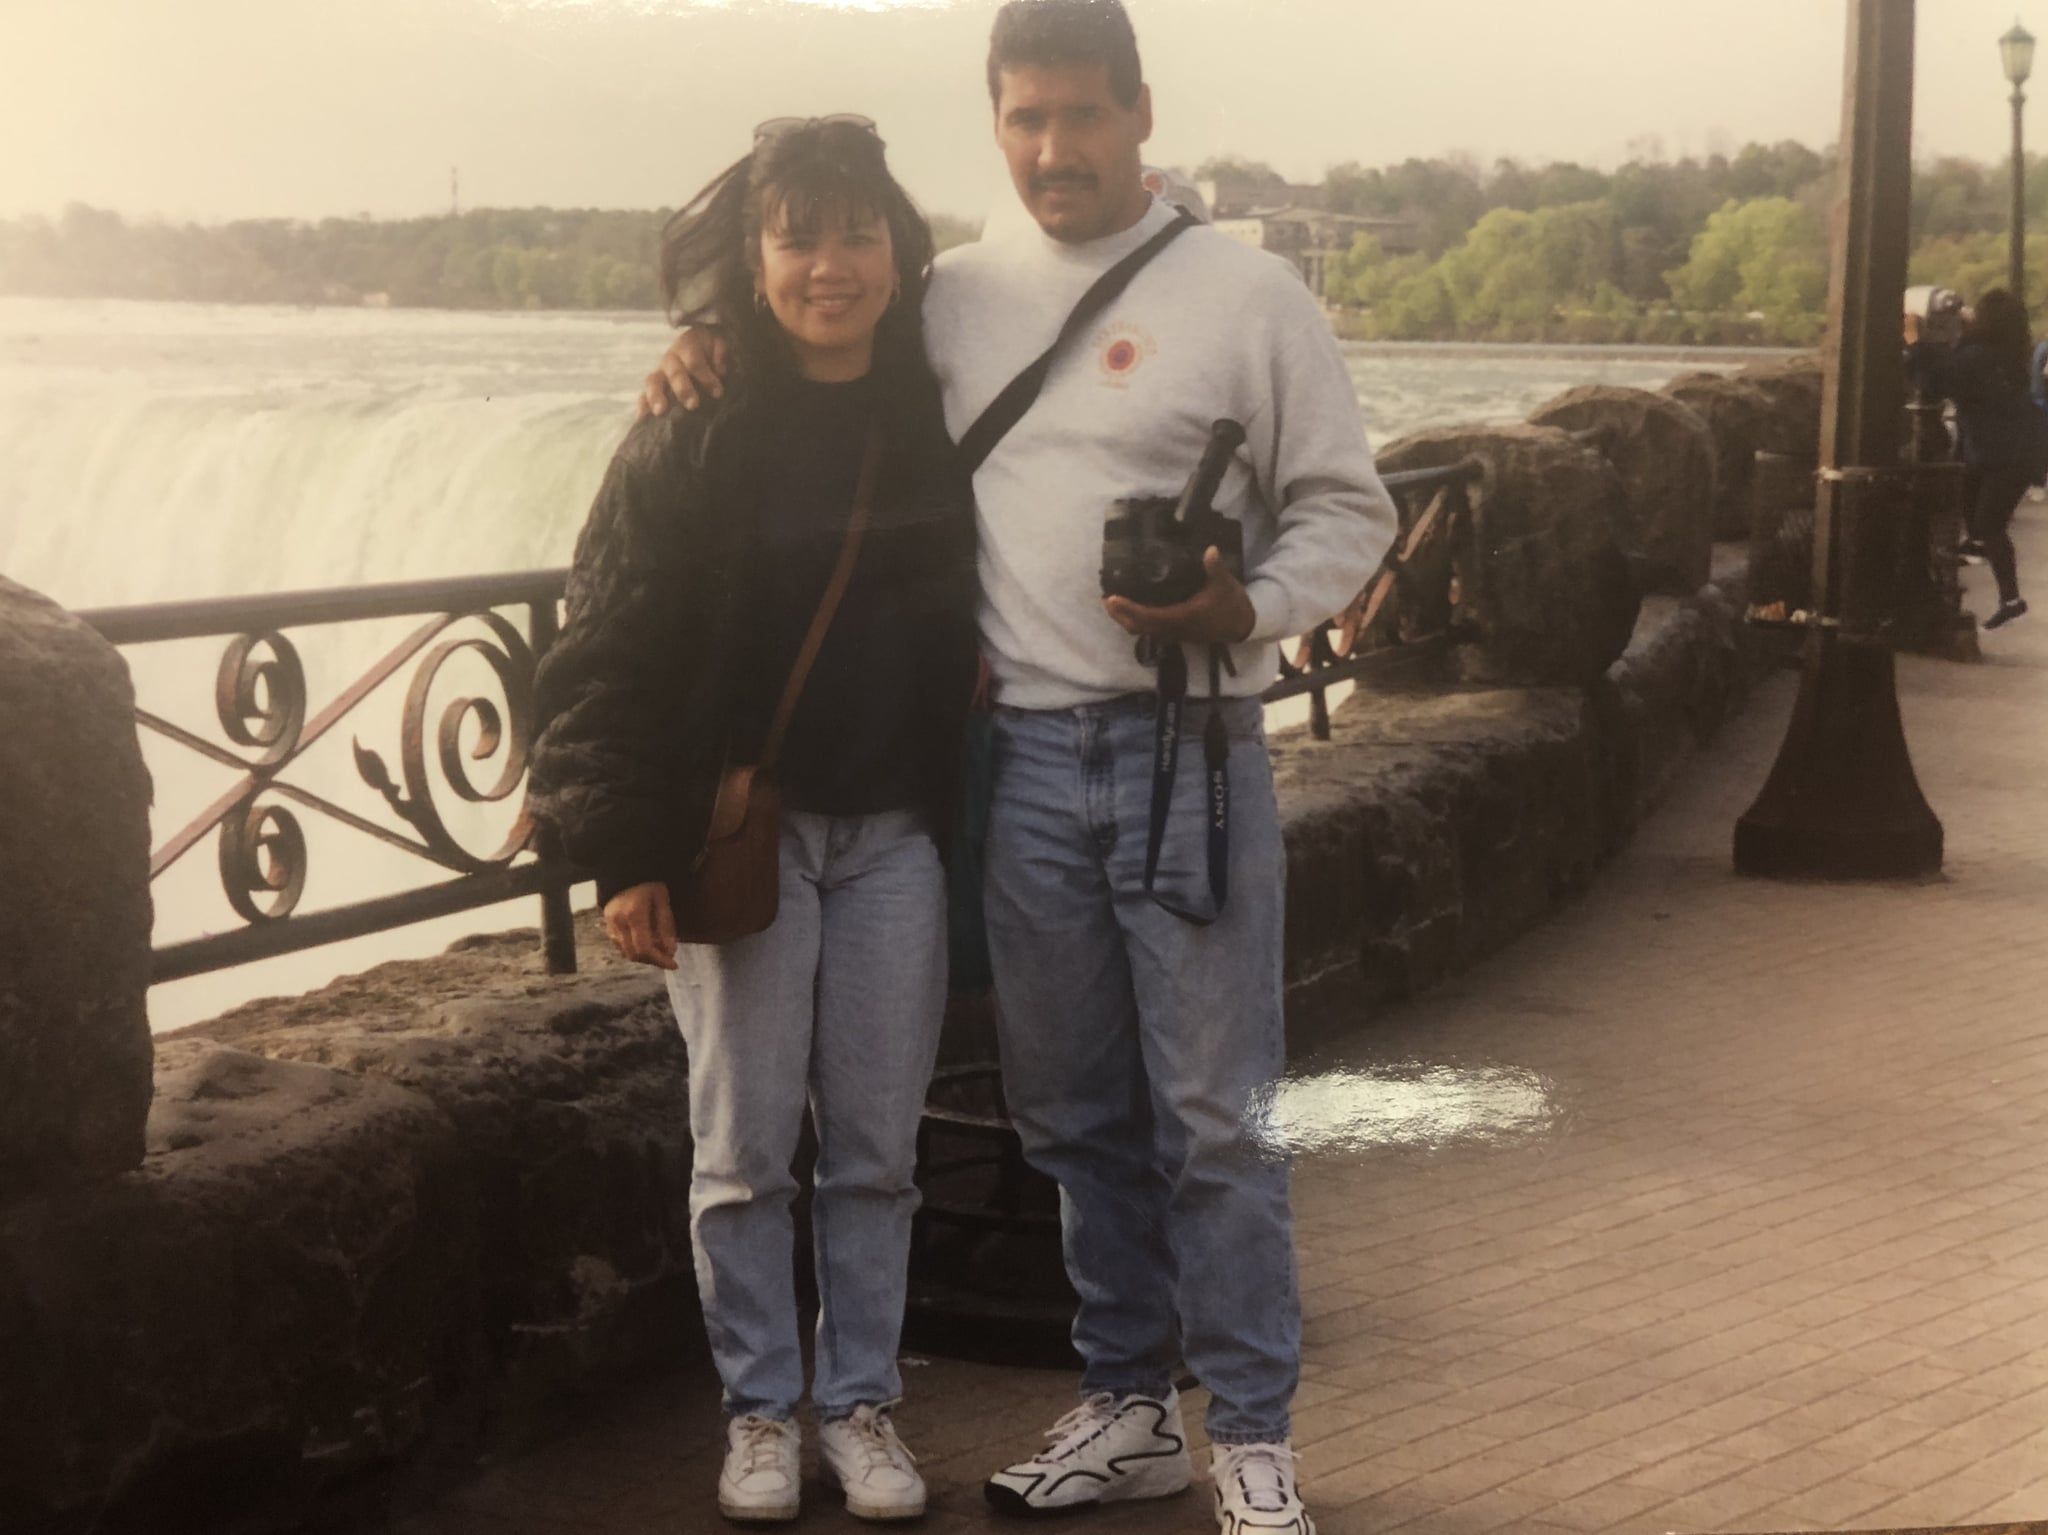 My parents in the early 90s.